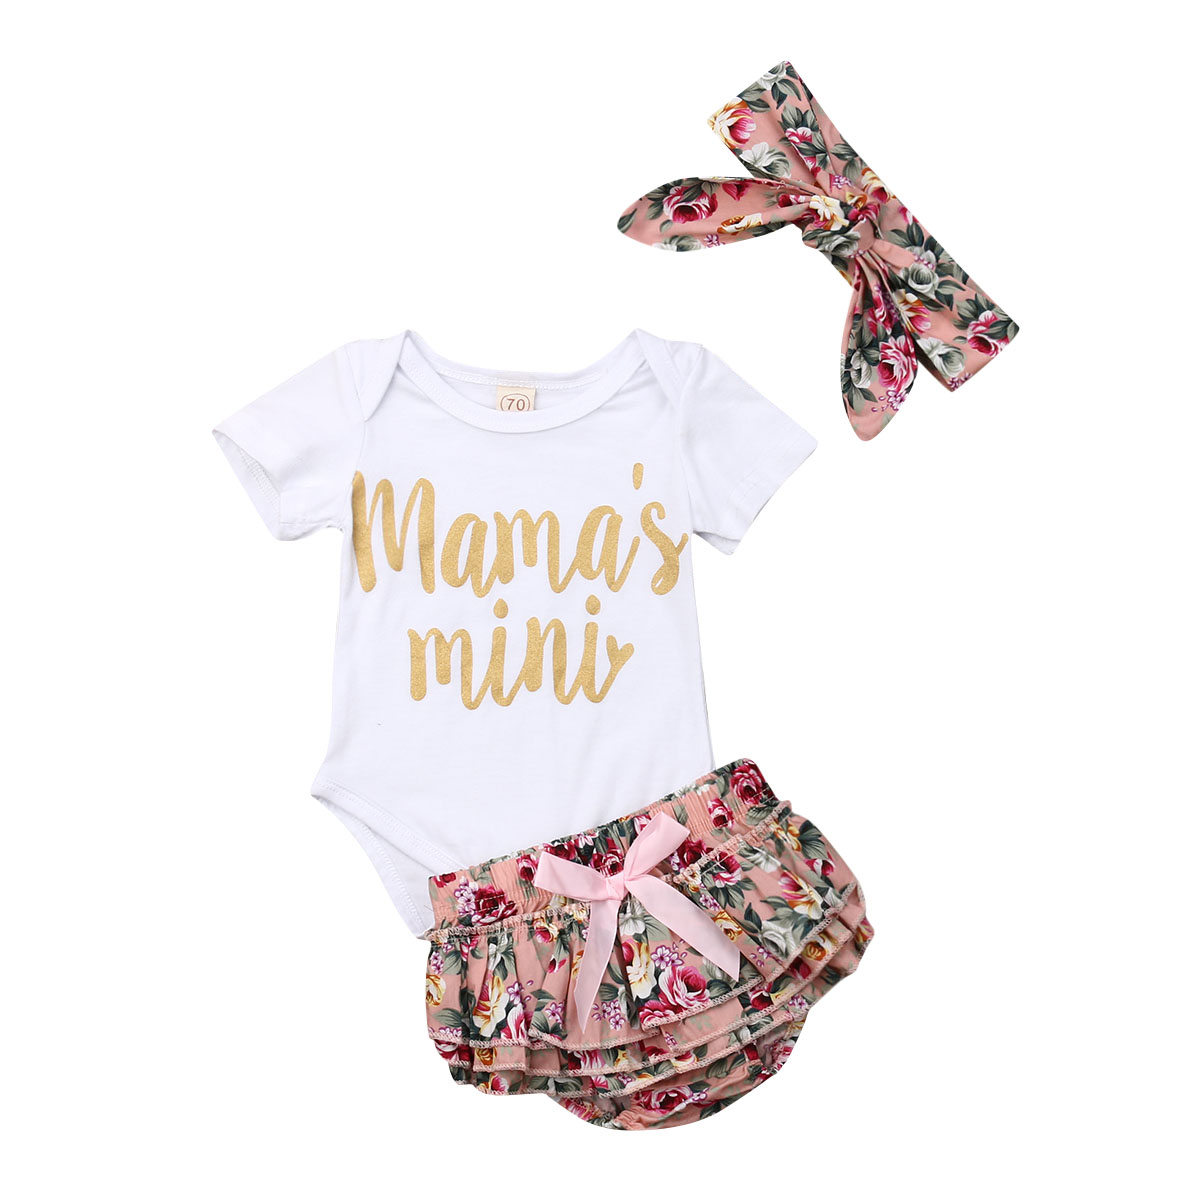 a3b8b85495f68 Newborn Baby Girl Cute Letter Print Bodysuits Carters+Floral Ruffles Bow  Tutu Skirts+Headband Bebe Girl Outfit Clothes Sets 3Pcs